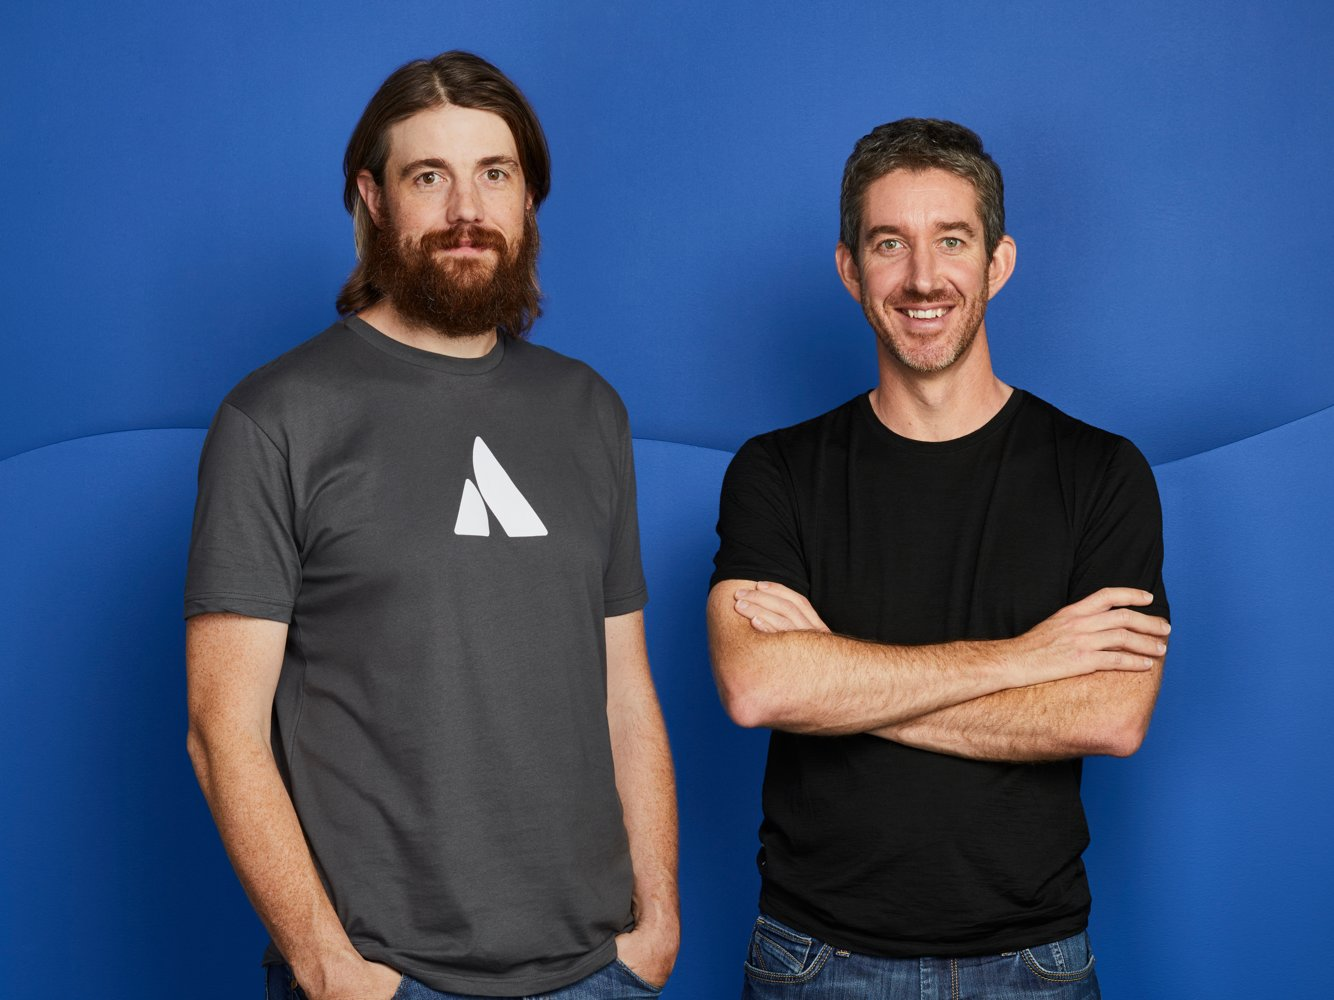 $32 billion Atlassian just made sweeping updates to its cloud products, as it changes with the times: 'We strongly believe cloud is our future'